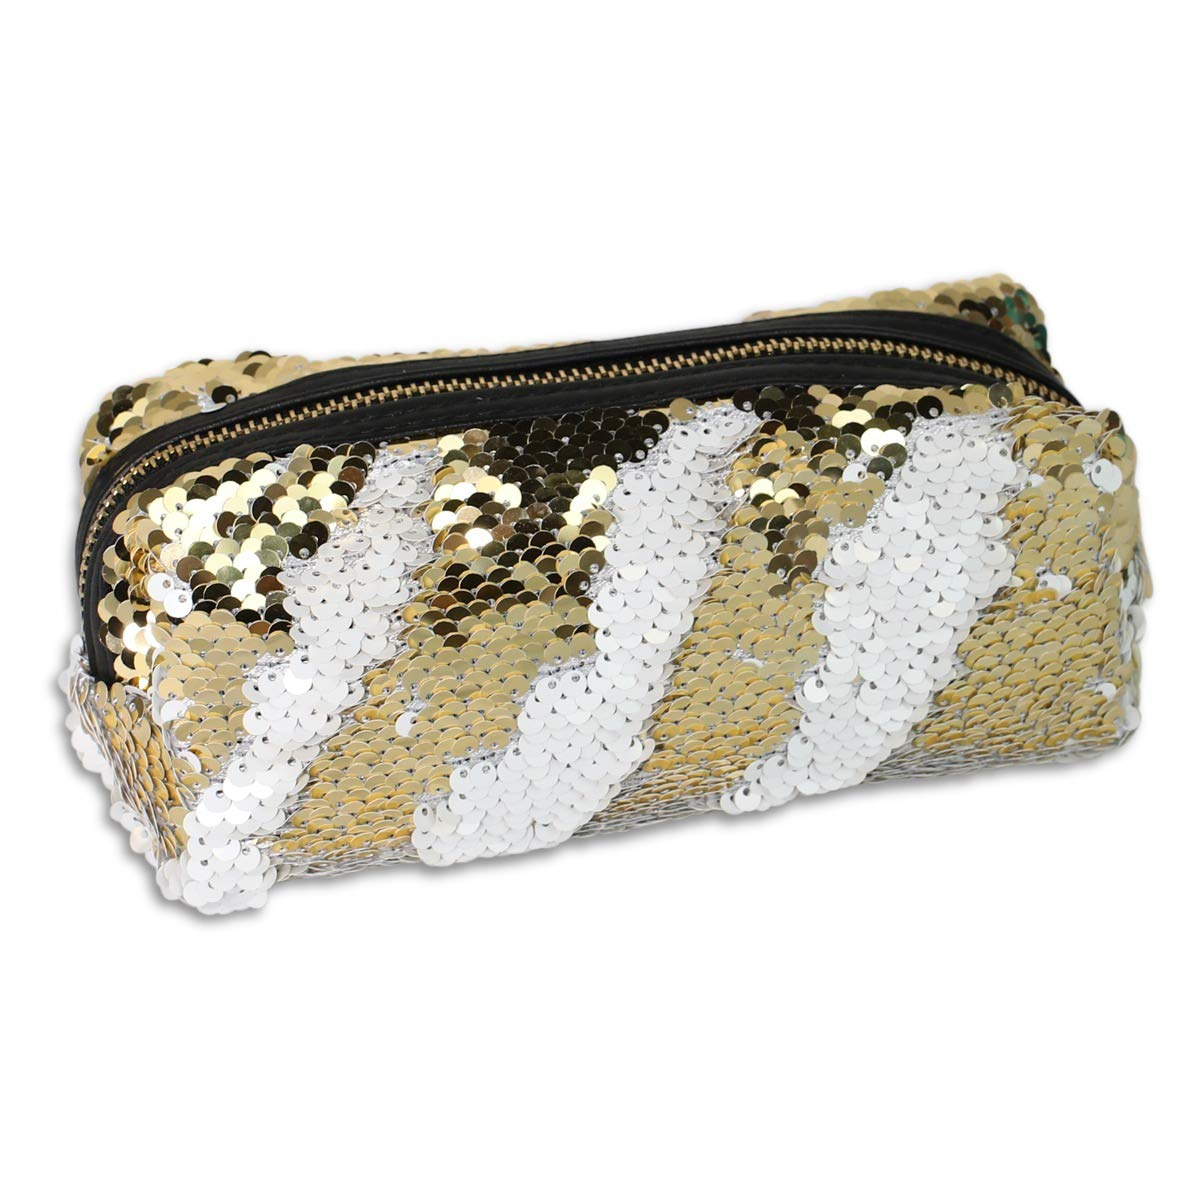 Funky Monkey Fashion Makeup Cosmetic Bag | Students Pencil Case Glitter | Reversible Mermaid Sequin Kids Pouch Women Fashion Handbag - Gold and White